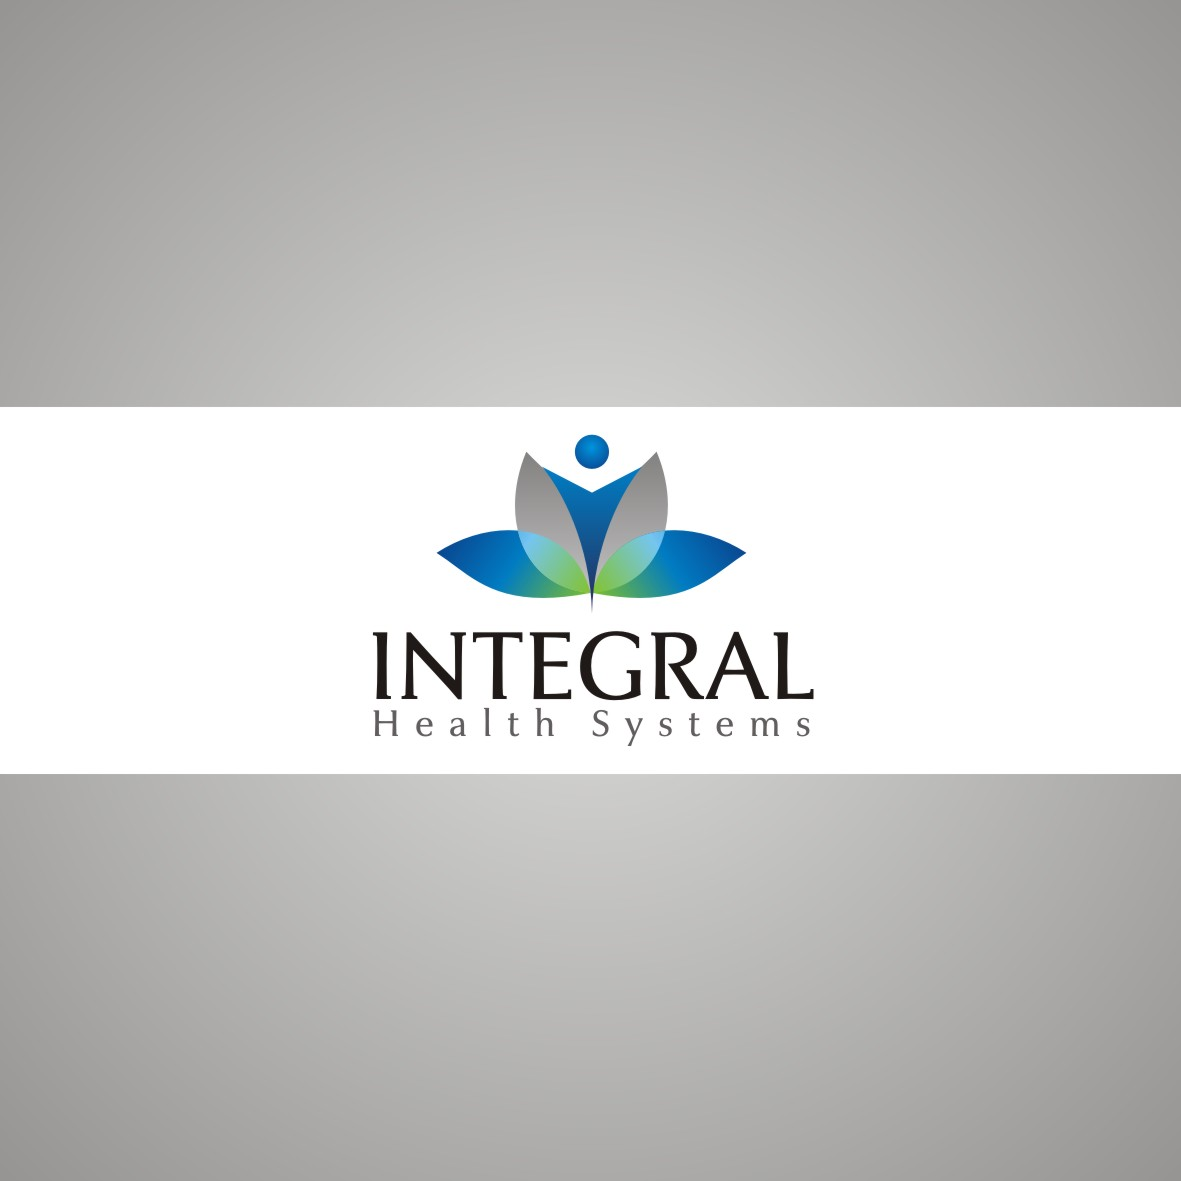 Logo Design by arteo_design - Entry No. 88 in the Logo Design Contest Unique Logo Design Wanted for Integral Health Systems.